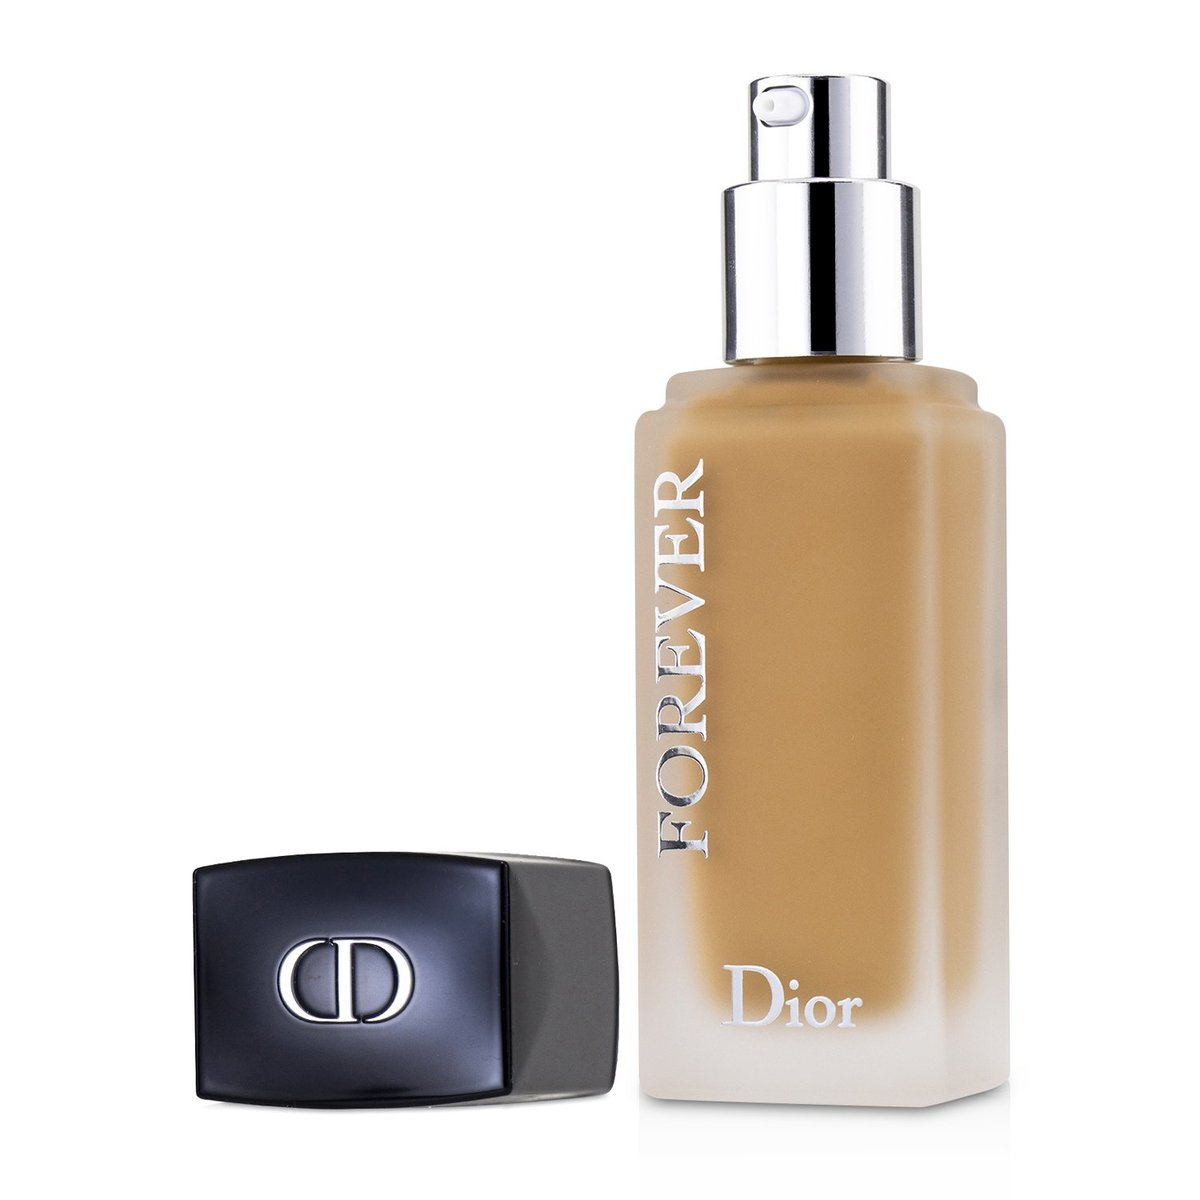 Dior Forever 24H Wear High Perfection Foundation SPF 35 - # 4W (Warm) [平行進口產品]